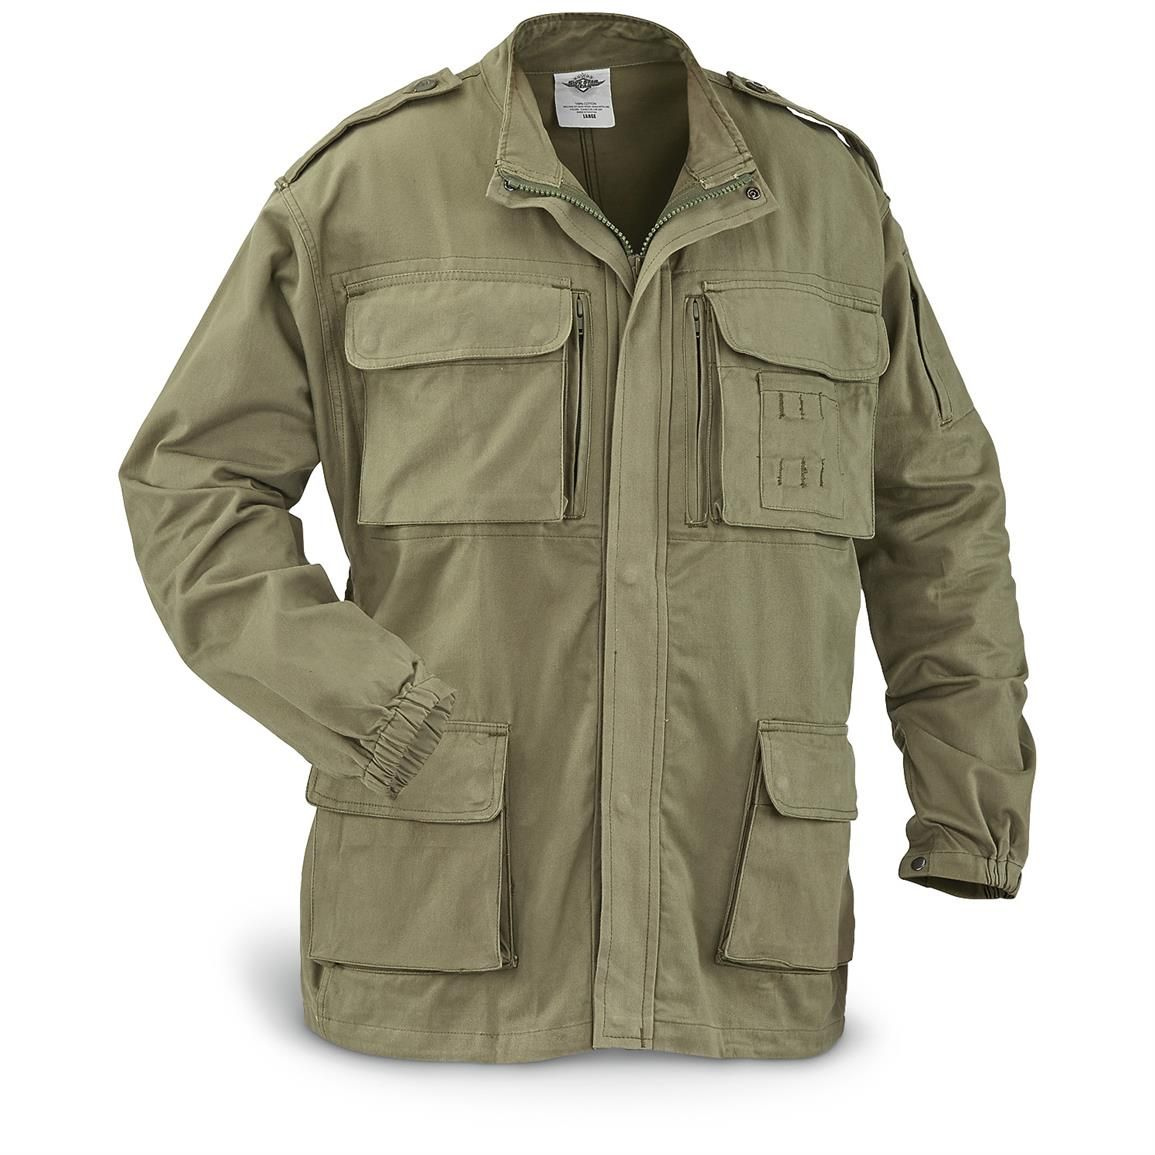 5ive Star Gear Concealed Carry Field Jacket, Stonewashed | concealed